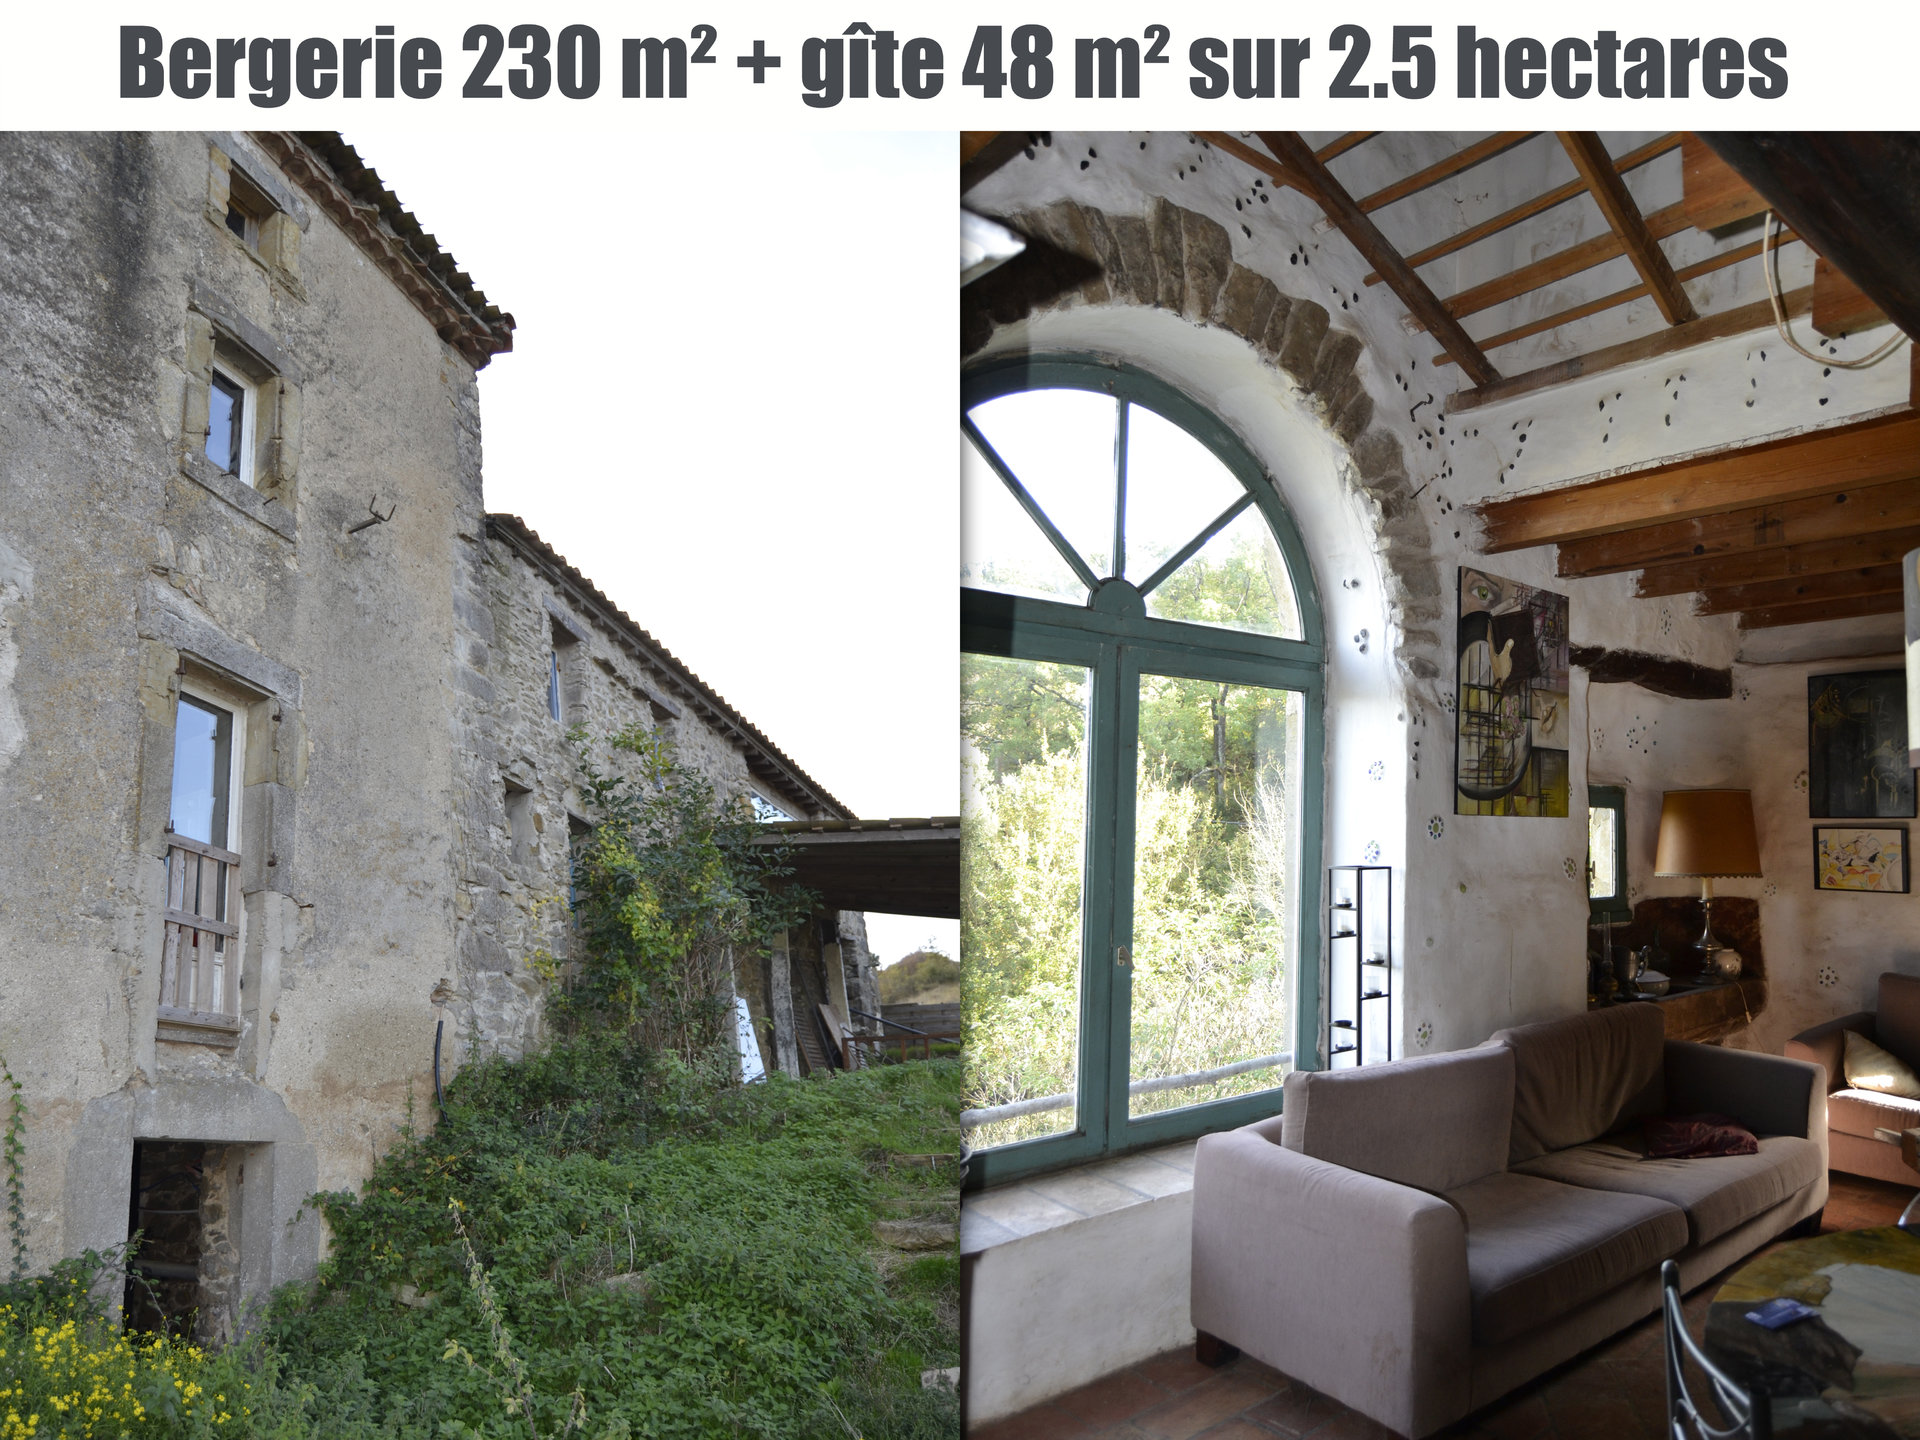 Ancienne bergerie sur 2.5 hectares